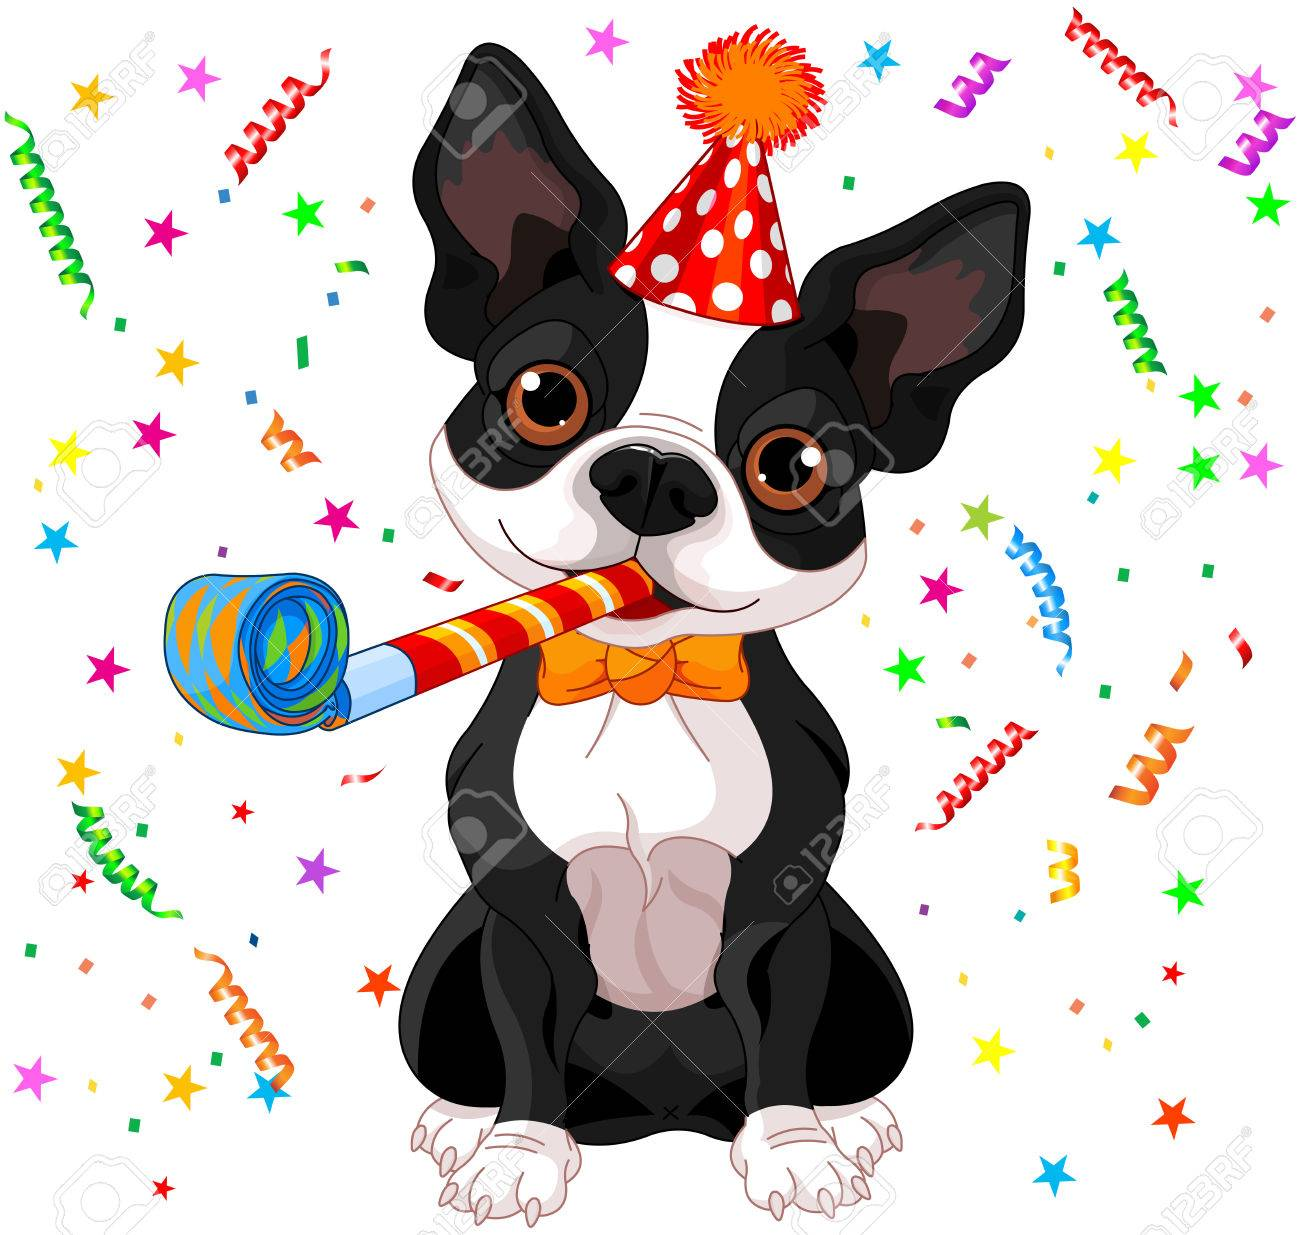 Rappel et attention en club - Page 2 35588778-illustration-of-cute-boston-terrier-celebrating